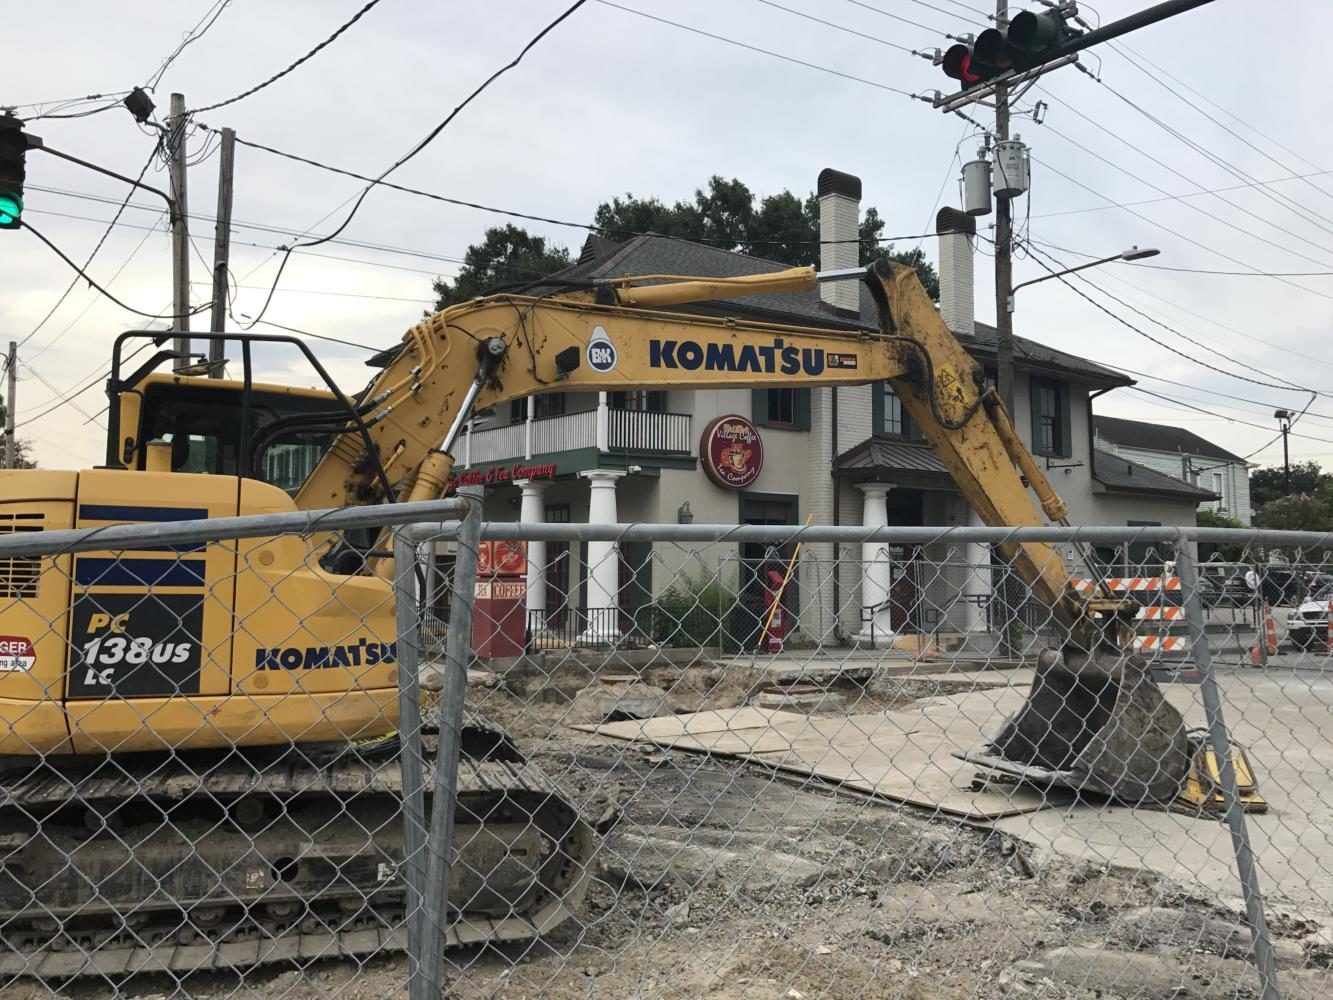 Construction+continues+along+Jefferson+Avenue+in+Uptown+New+Orleans.+The+intersection+of+Jefferson+Avenue+and+Freret+Street+is+expected+to+be+closed+for+the+next+three+months.+Photo+credit%3A+Katelyn+Fecteau